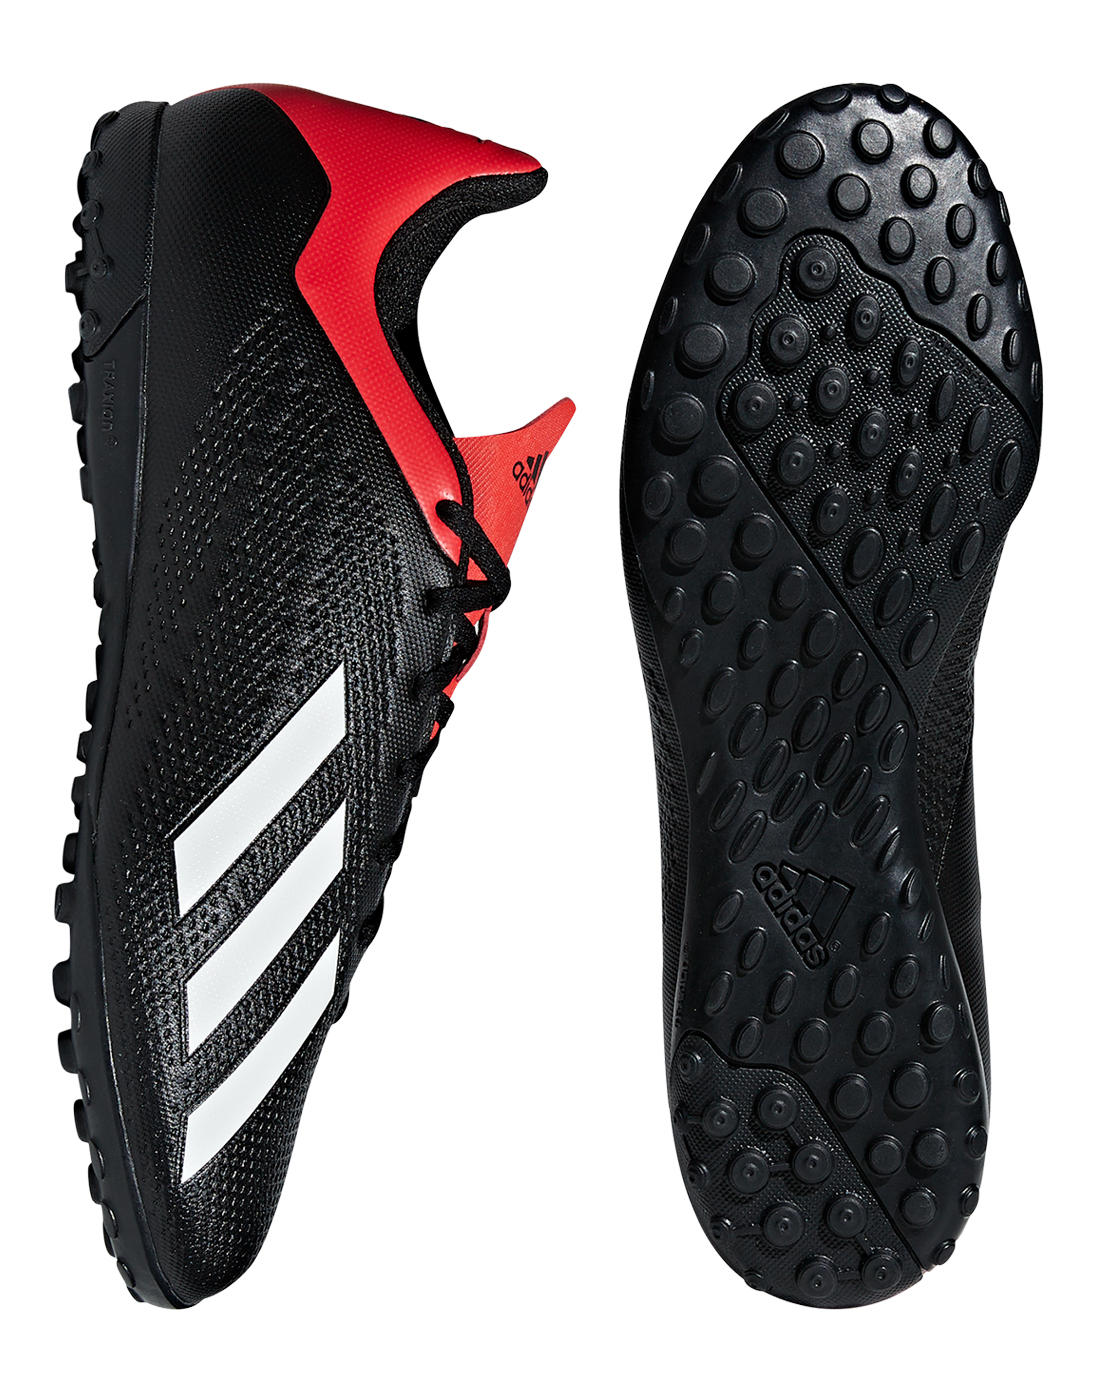 051e84e46 Black & Red adidas X 18.4 Astro Boots   Initiator Pack   Life Style ...